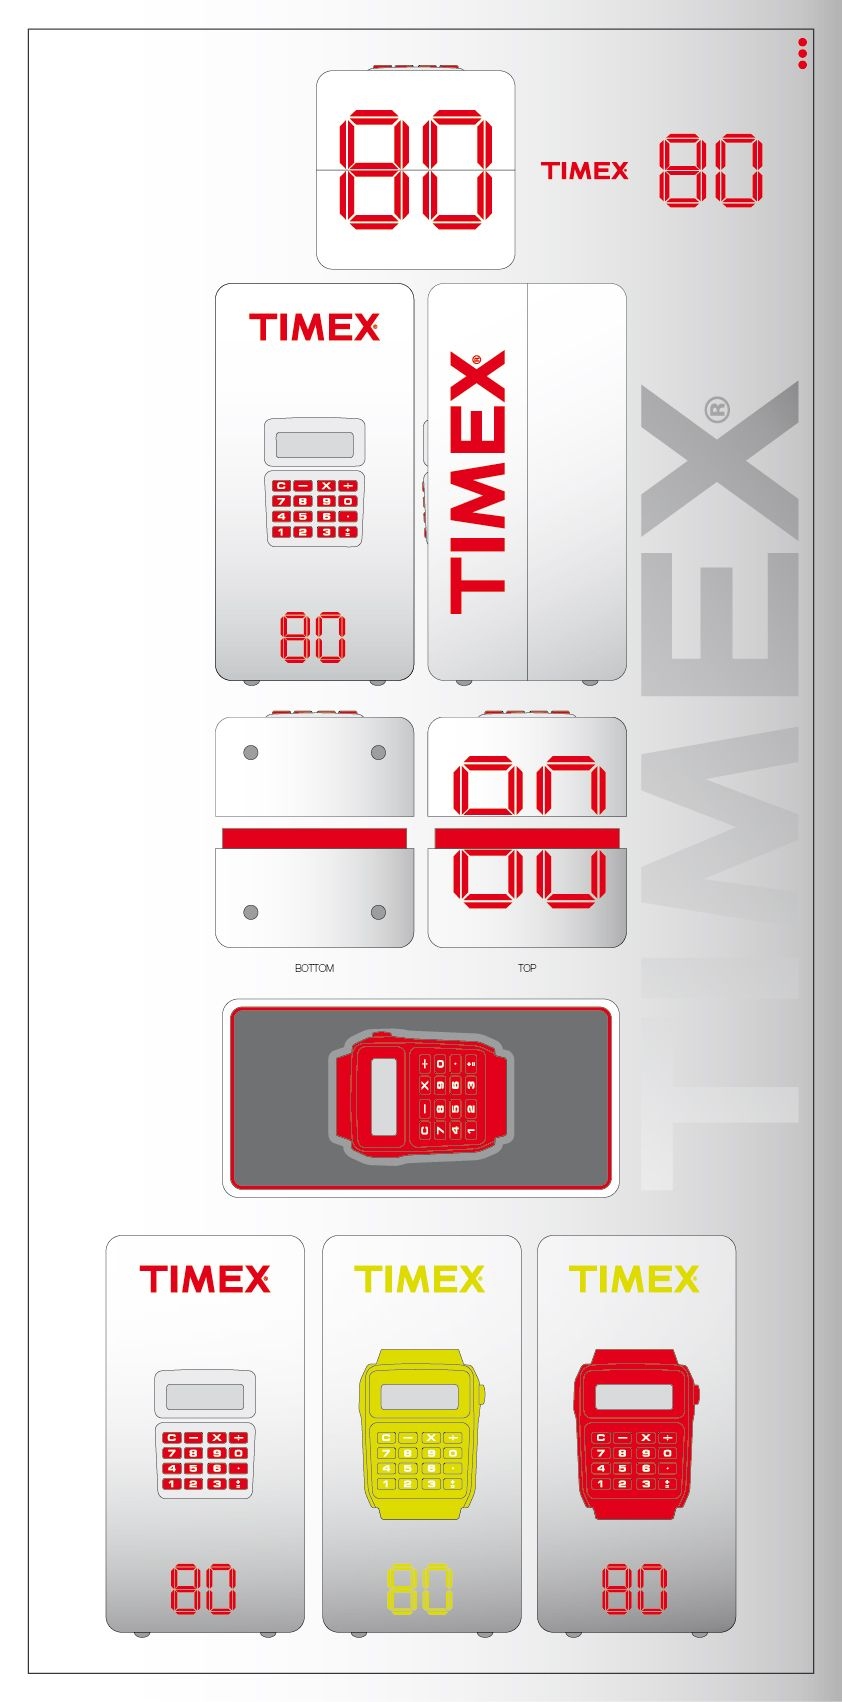 concept packaging TIMEX 80